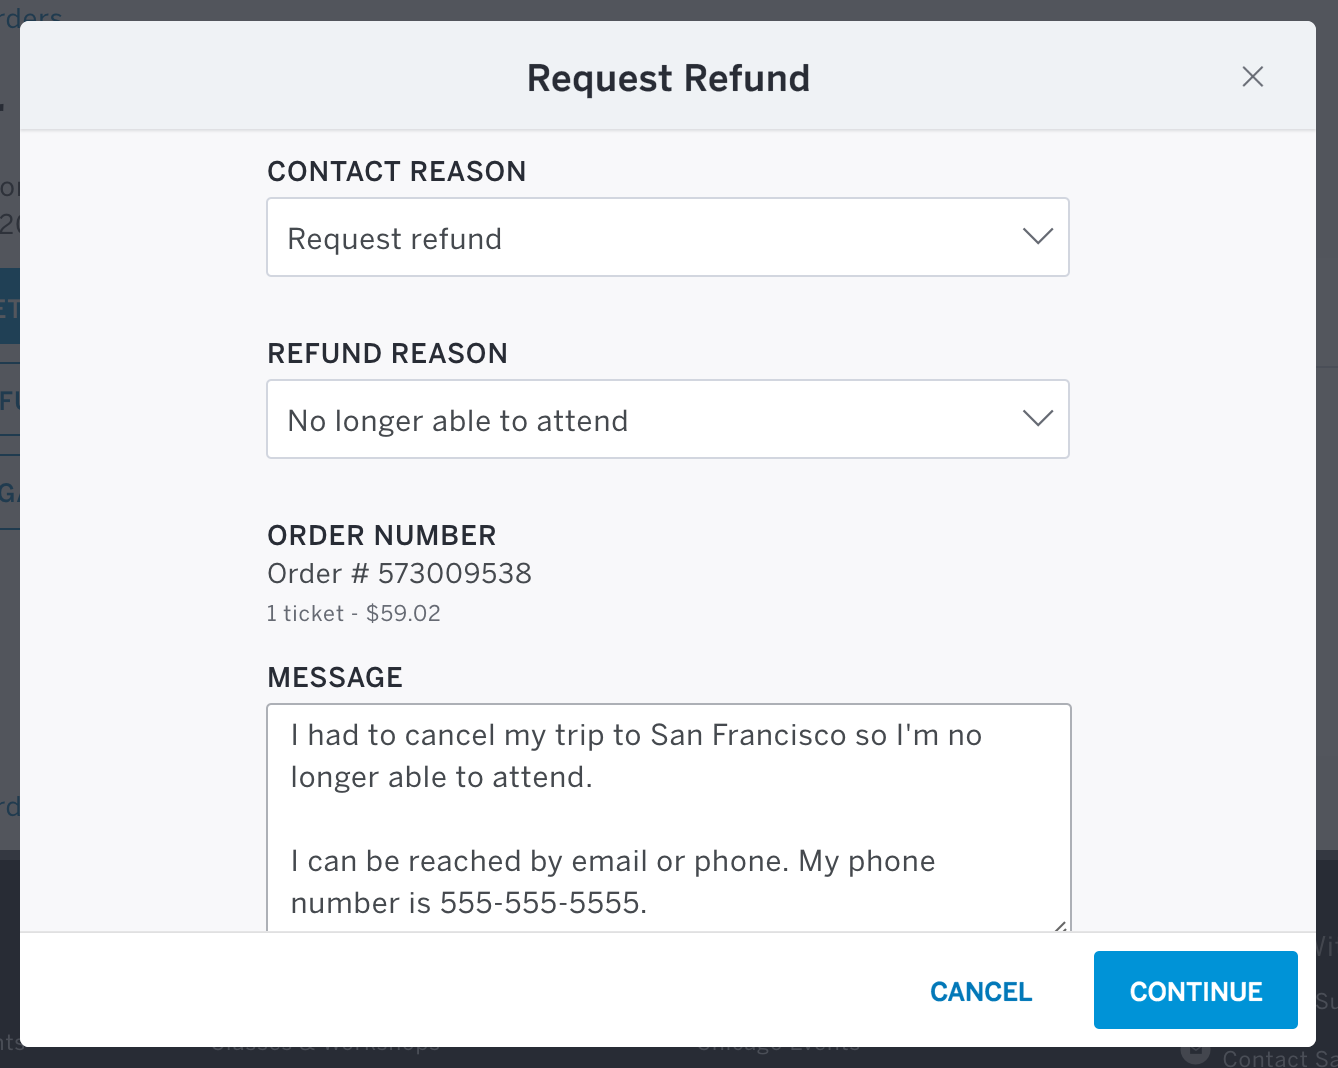 Refund Reason is the 4th field in the form, and the message field is located at the bottom of the form. The Continue button is located in the bottom right corner.